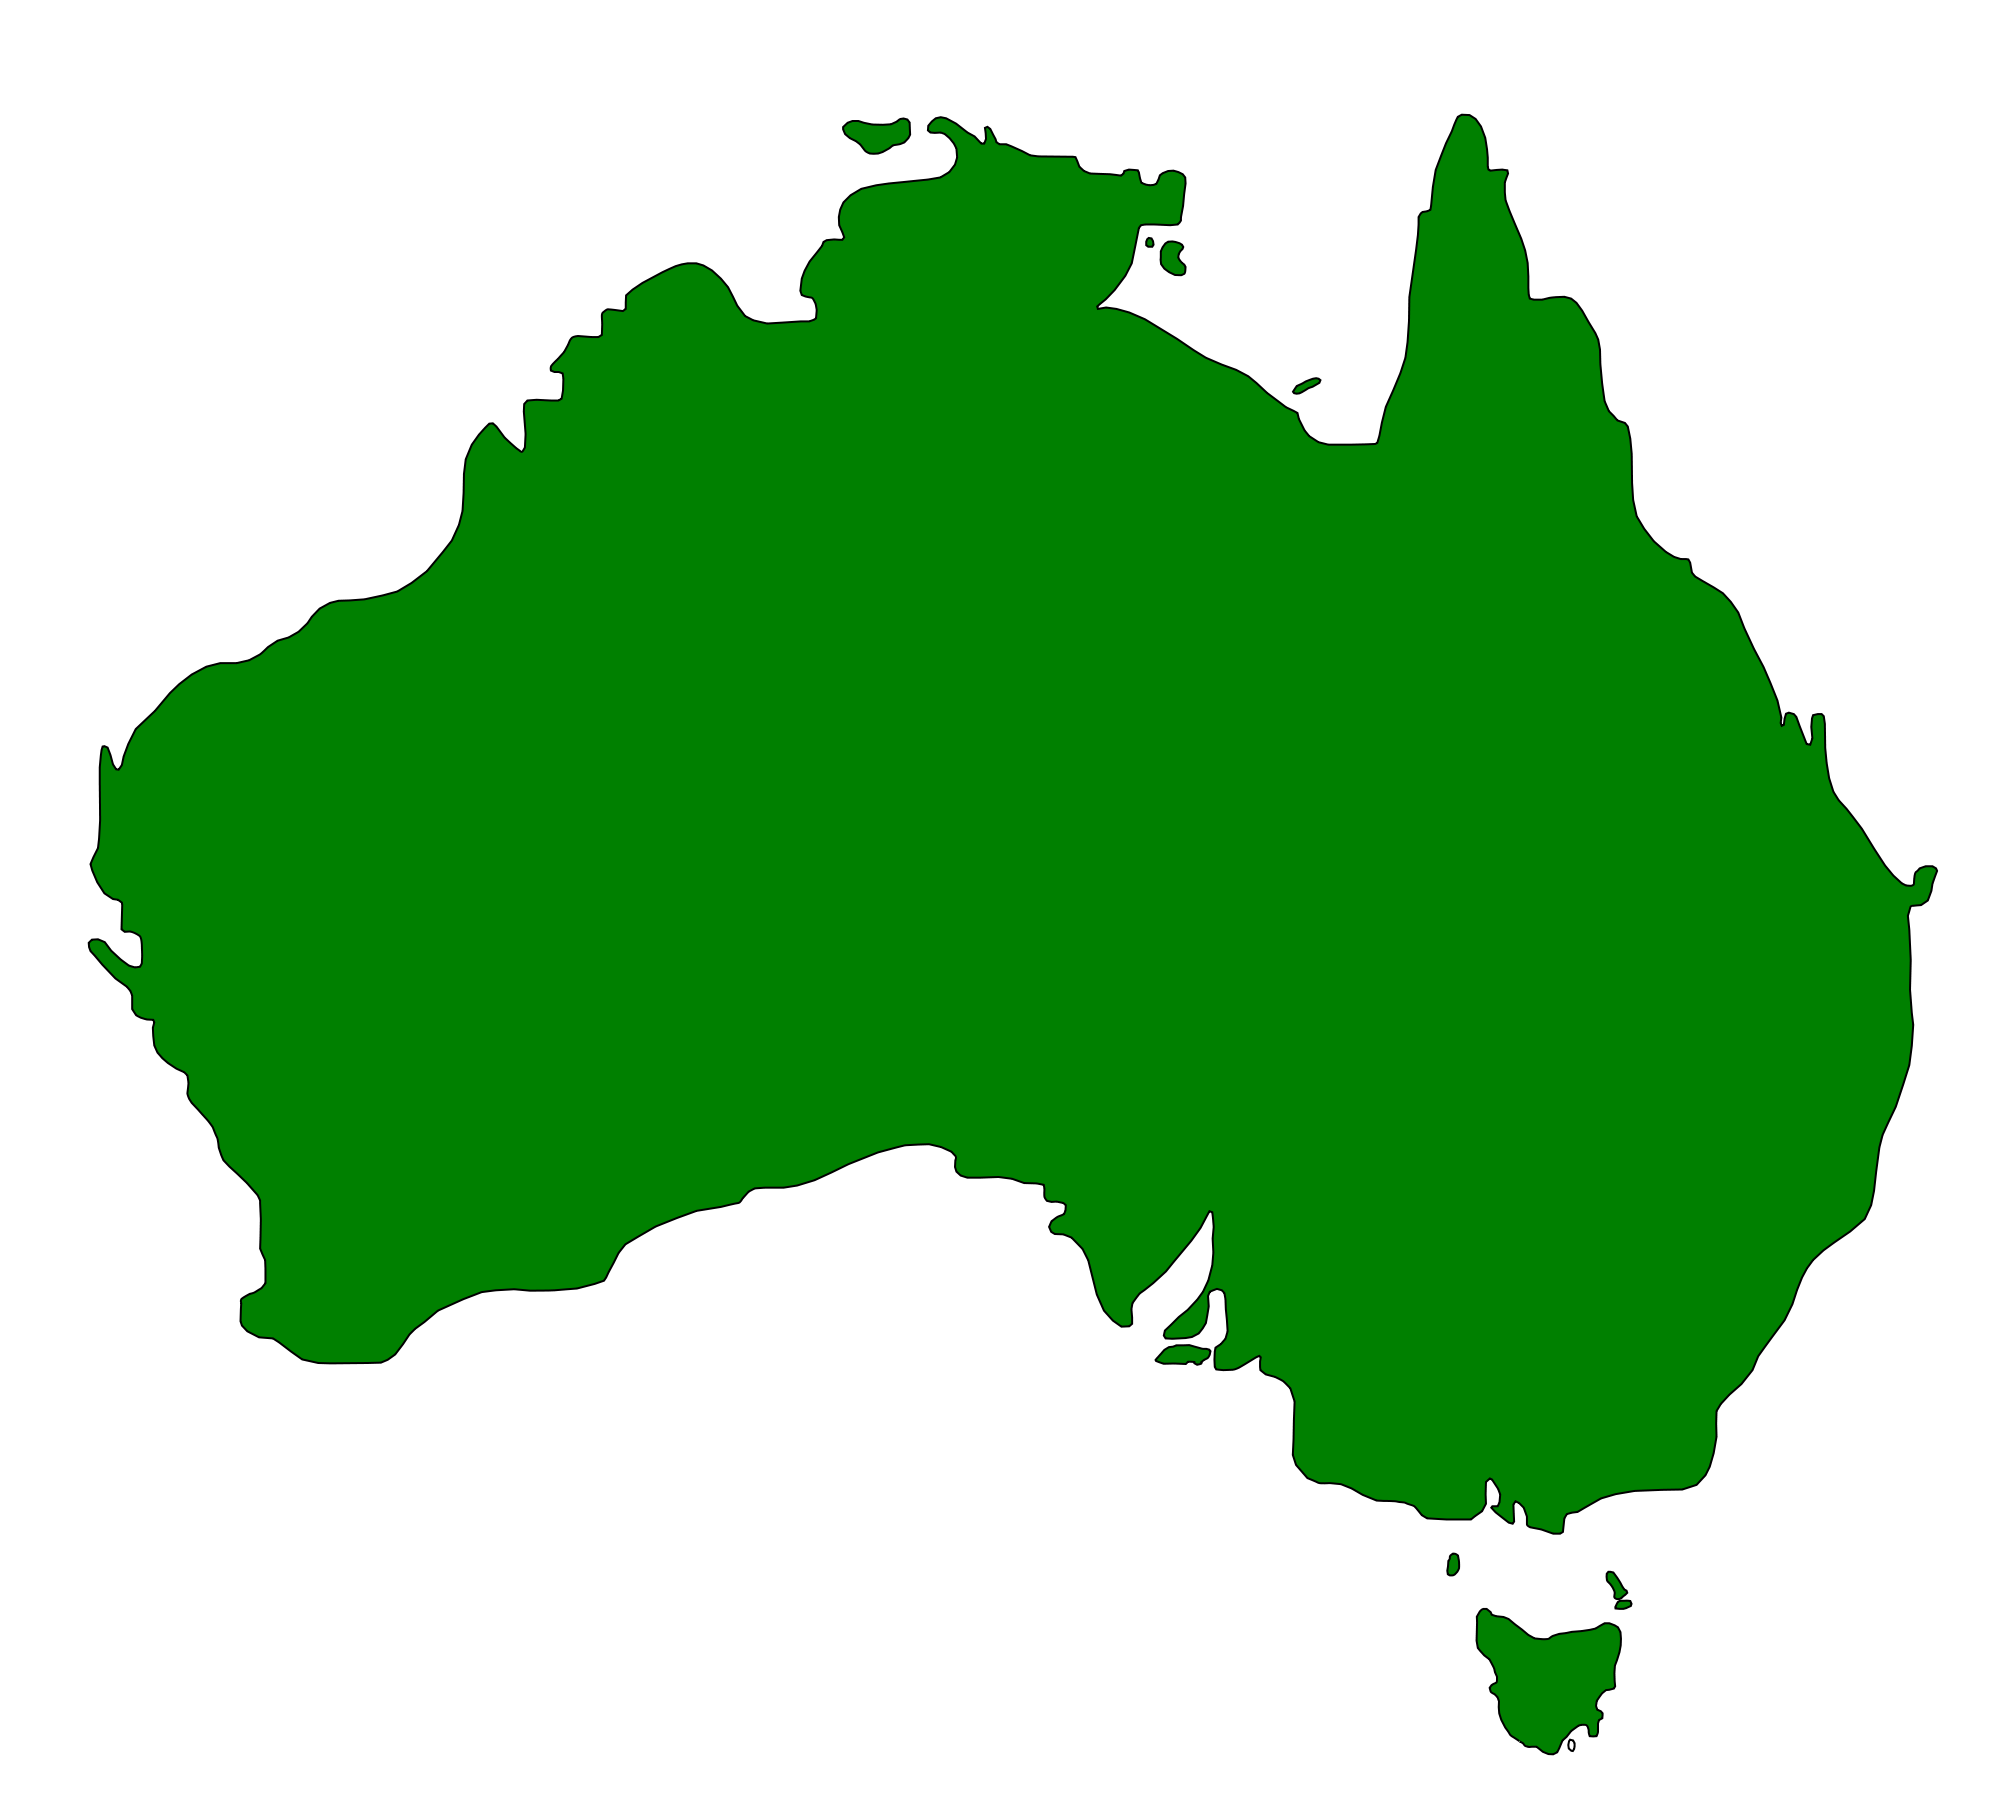 Australia transparent svg. File wikimedia commons open